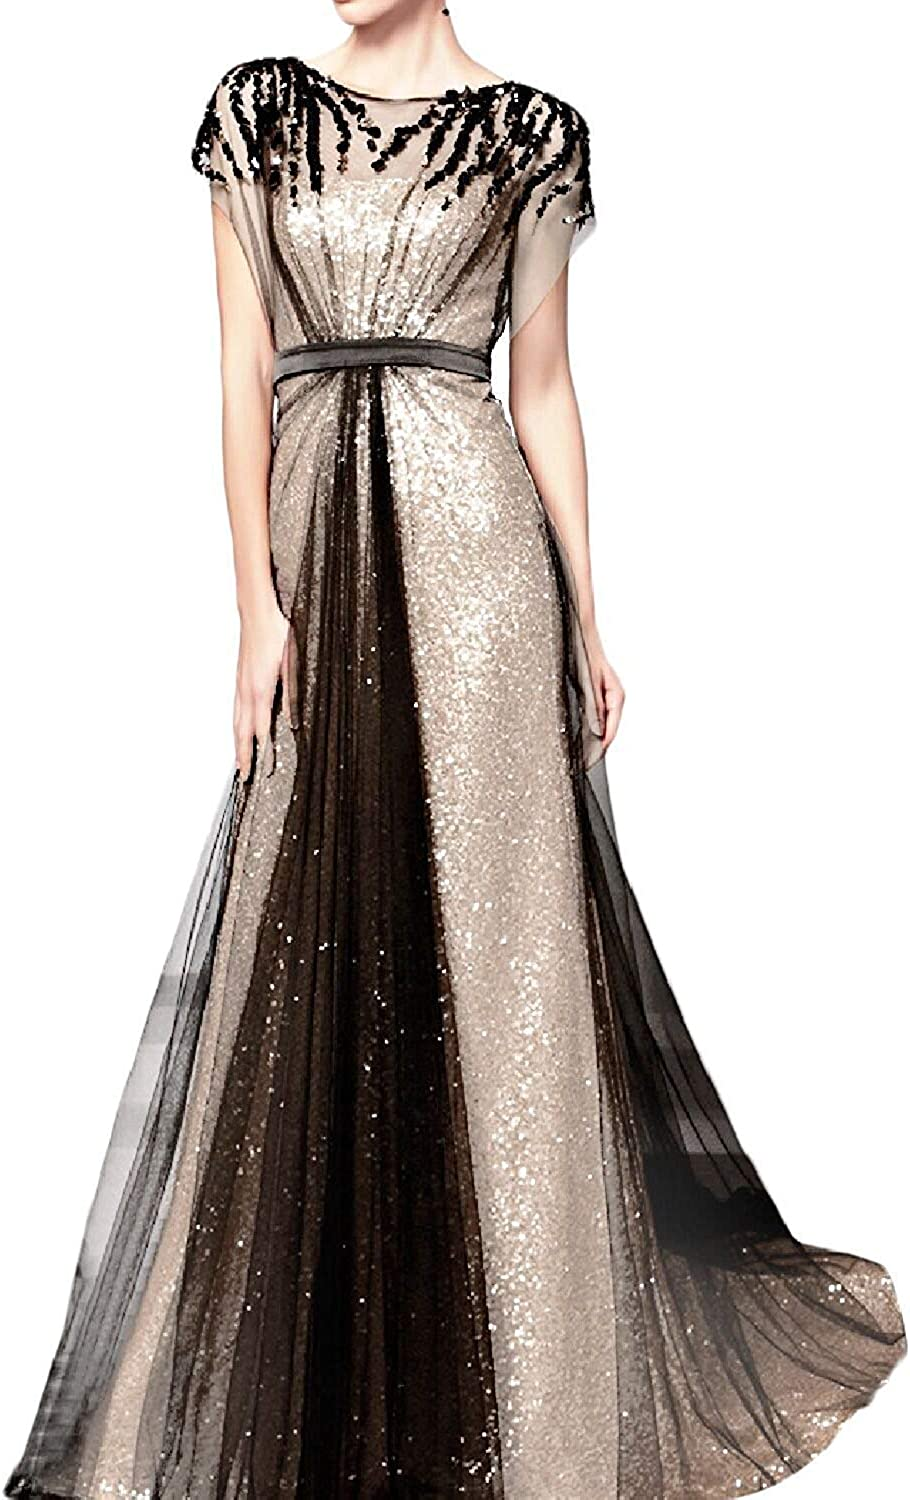 LUBridal Women's High Neck A Line Long Sequin Evening Dresses 2019 Formal Prom Gown with Sleeves